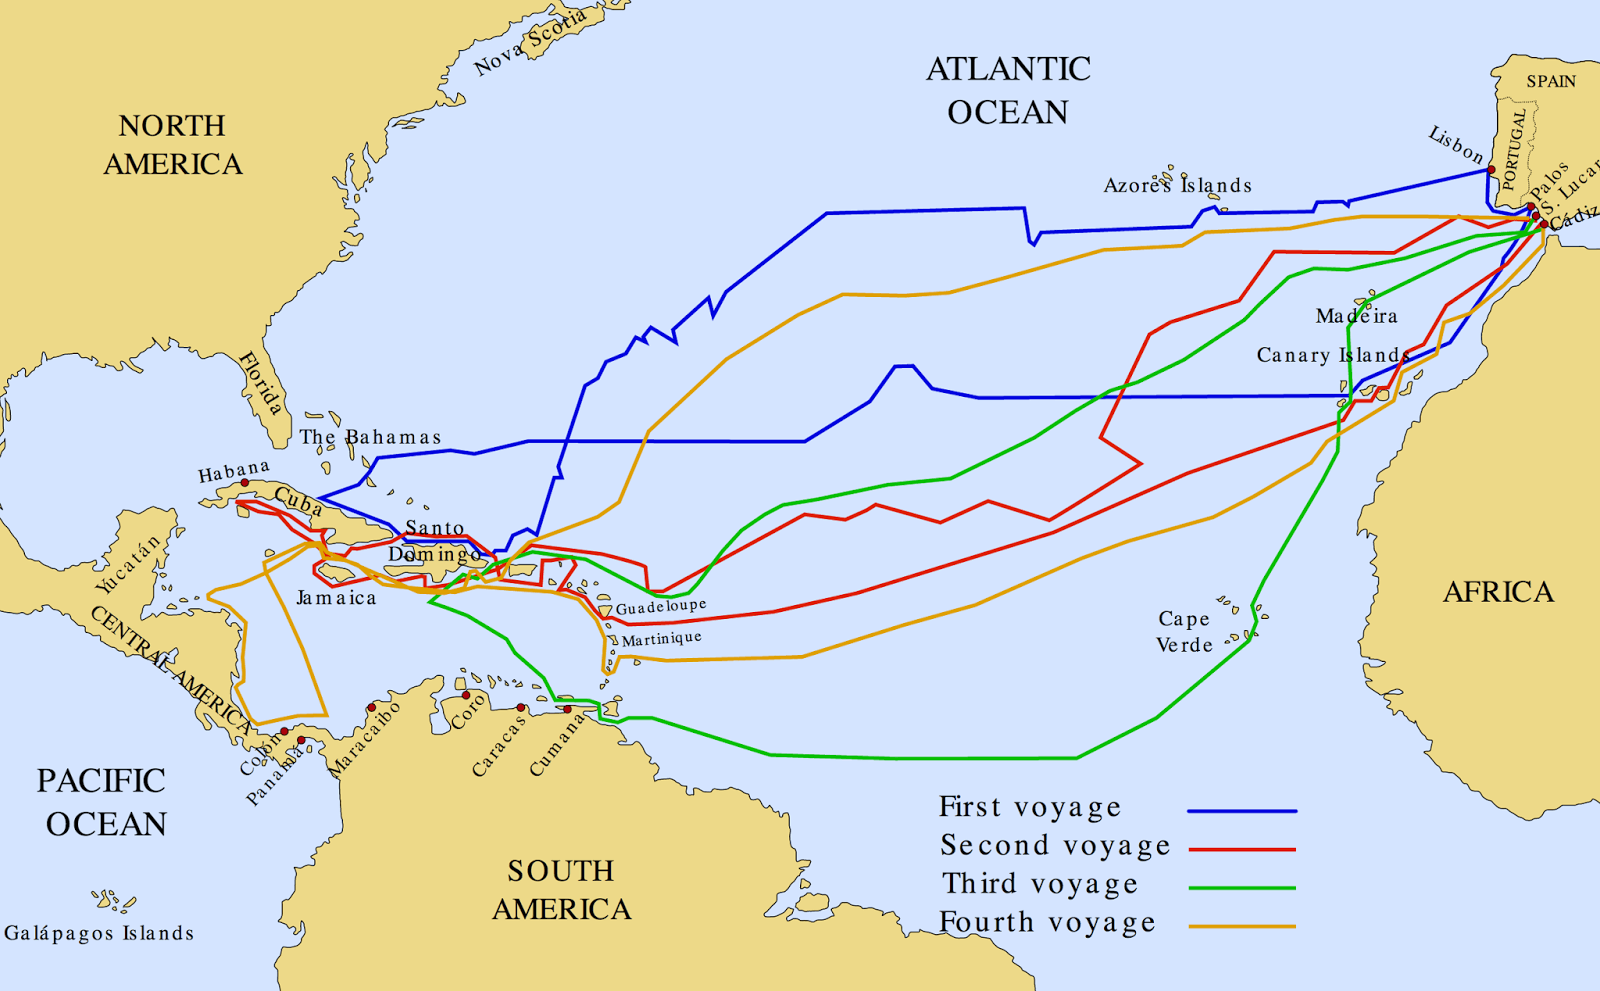 Ponce de Leon's route on four voyages to the New World